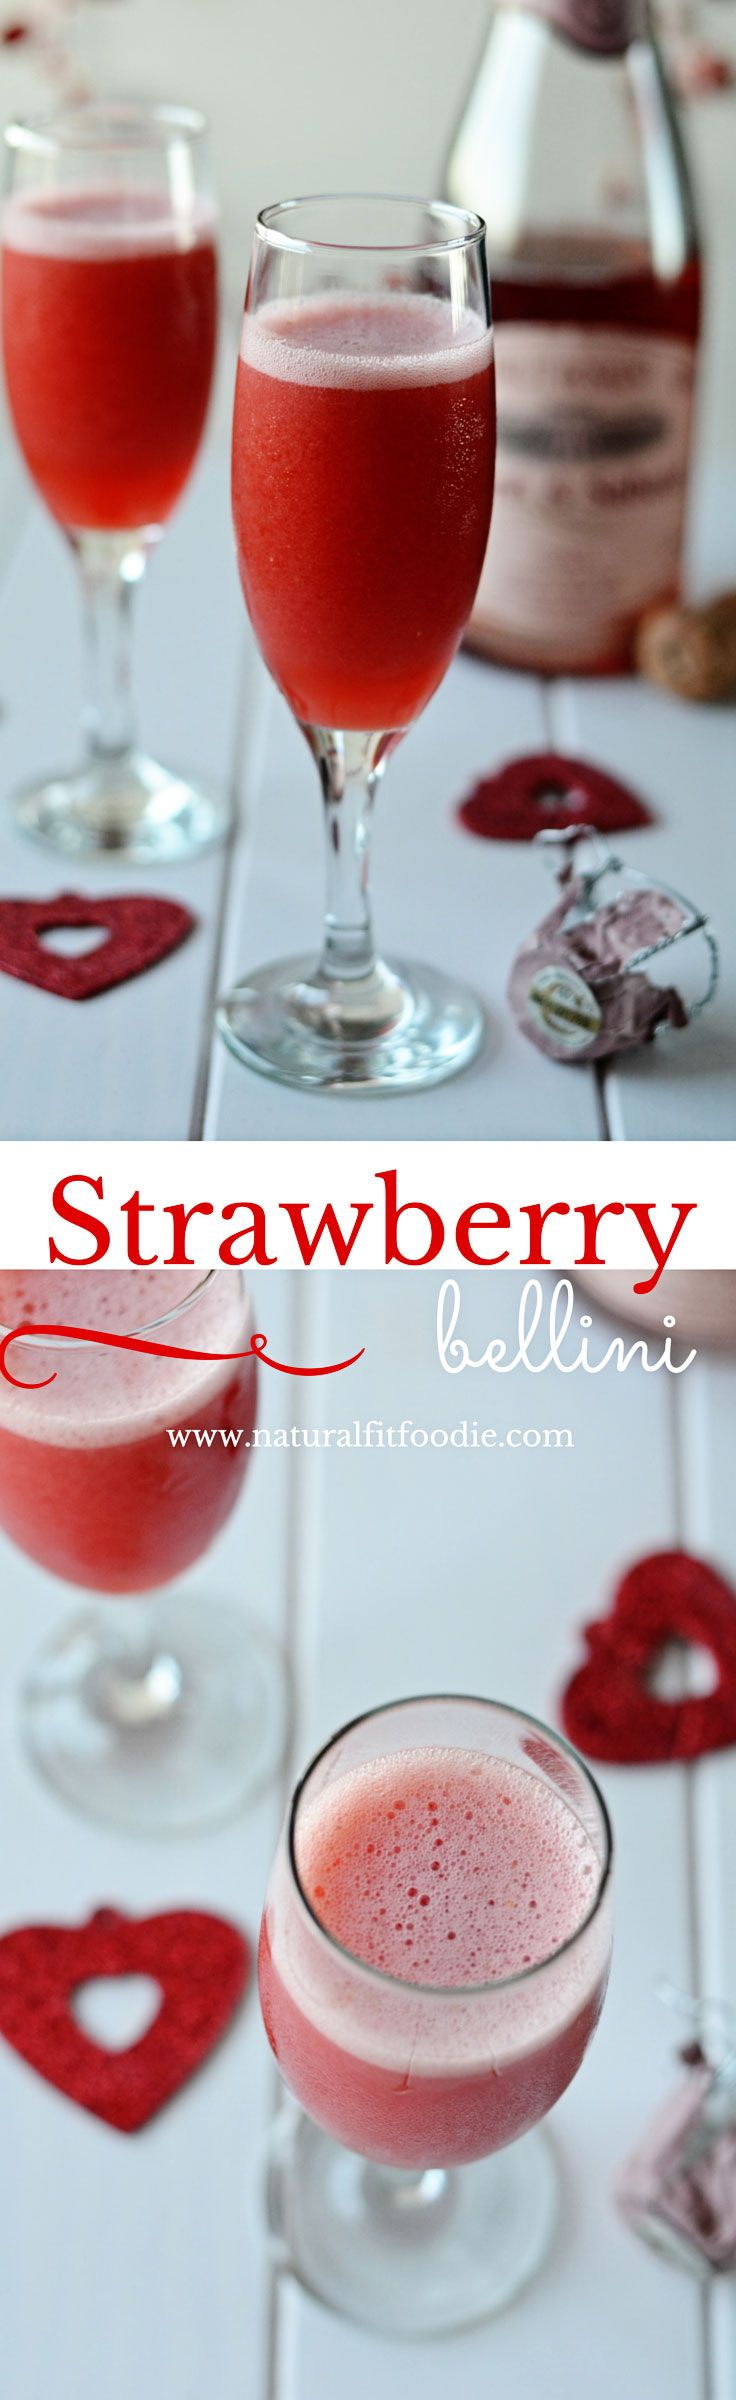 how to make strawberry fields drink